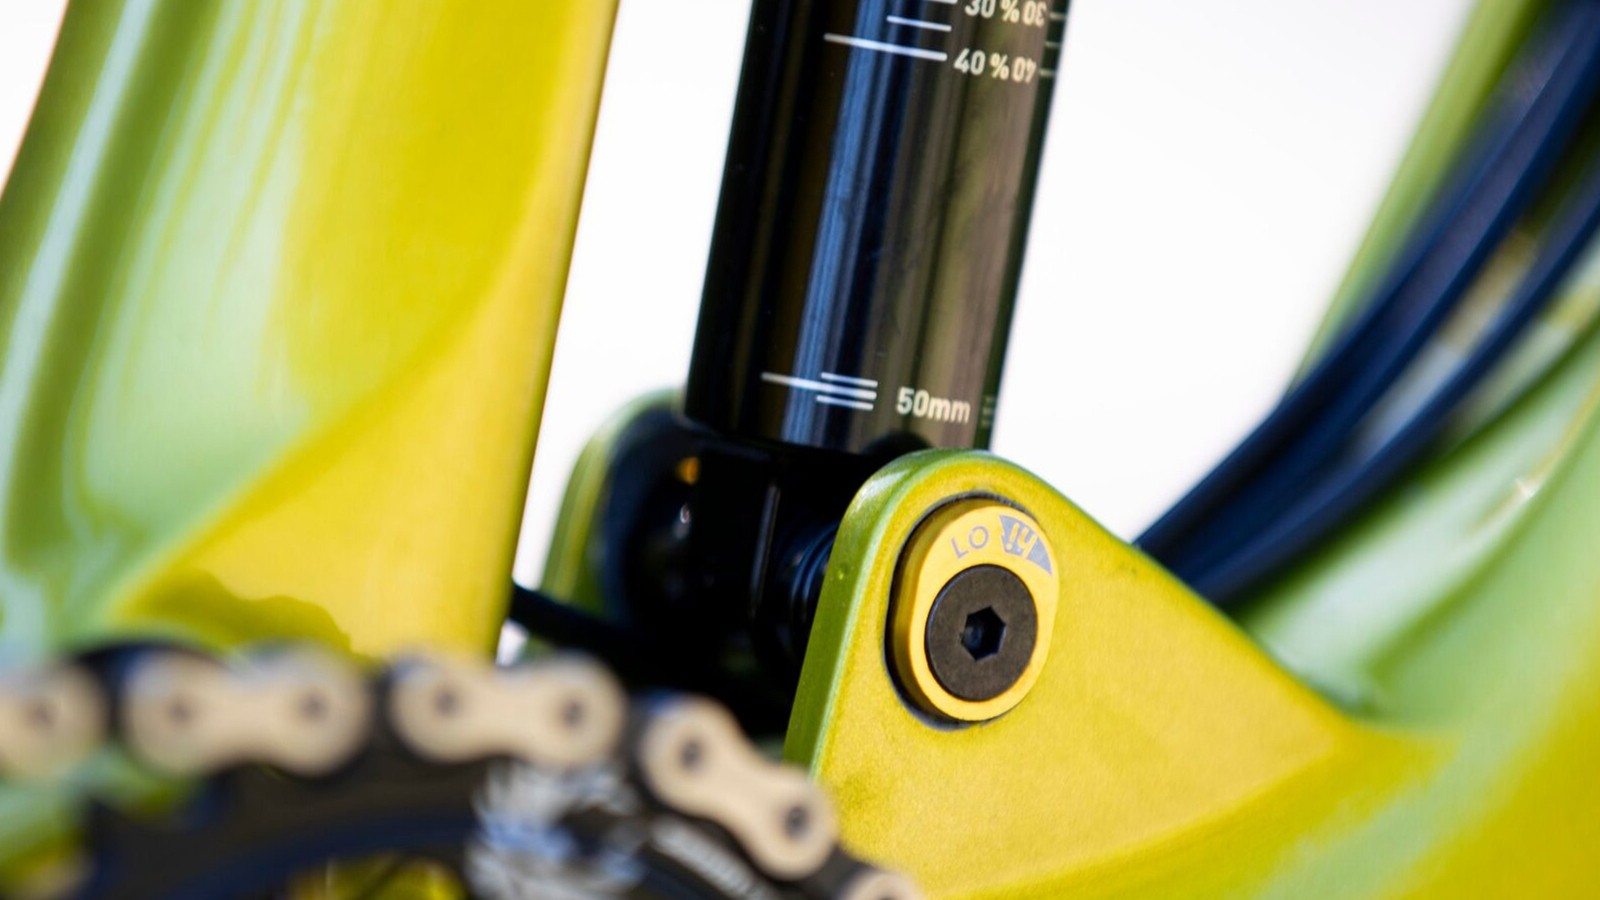 Like many bikes released lately, there's a chip to adjust the ride height and frame angles — in this case by 5mm and 0.5 degrees, respectively